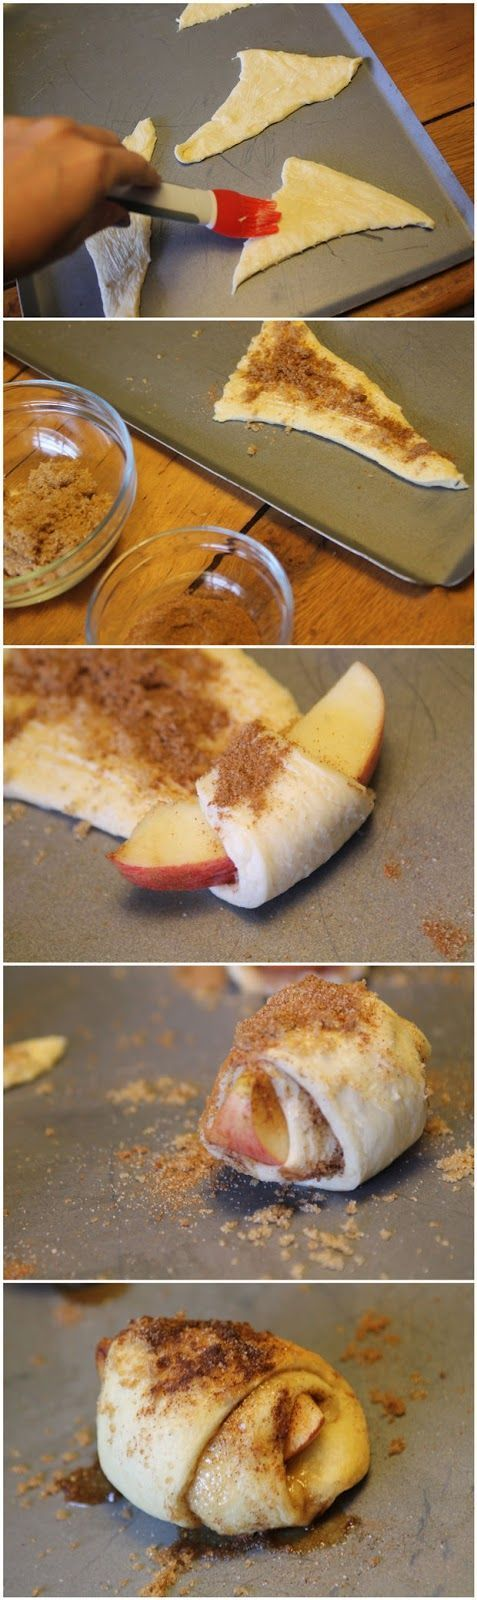 Bite Size Apple Pies for Thanksgiving